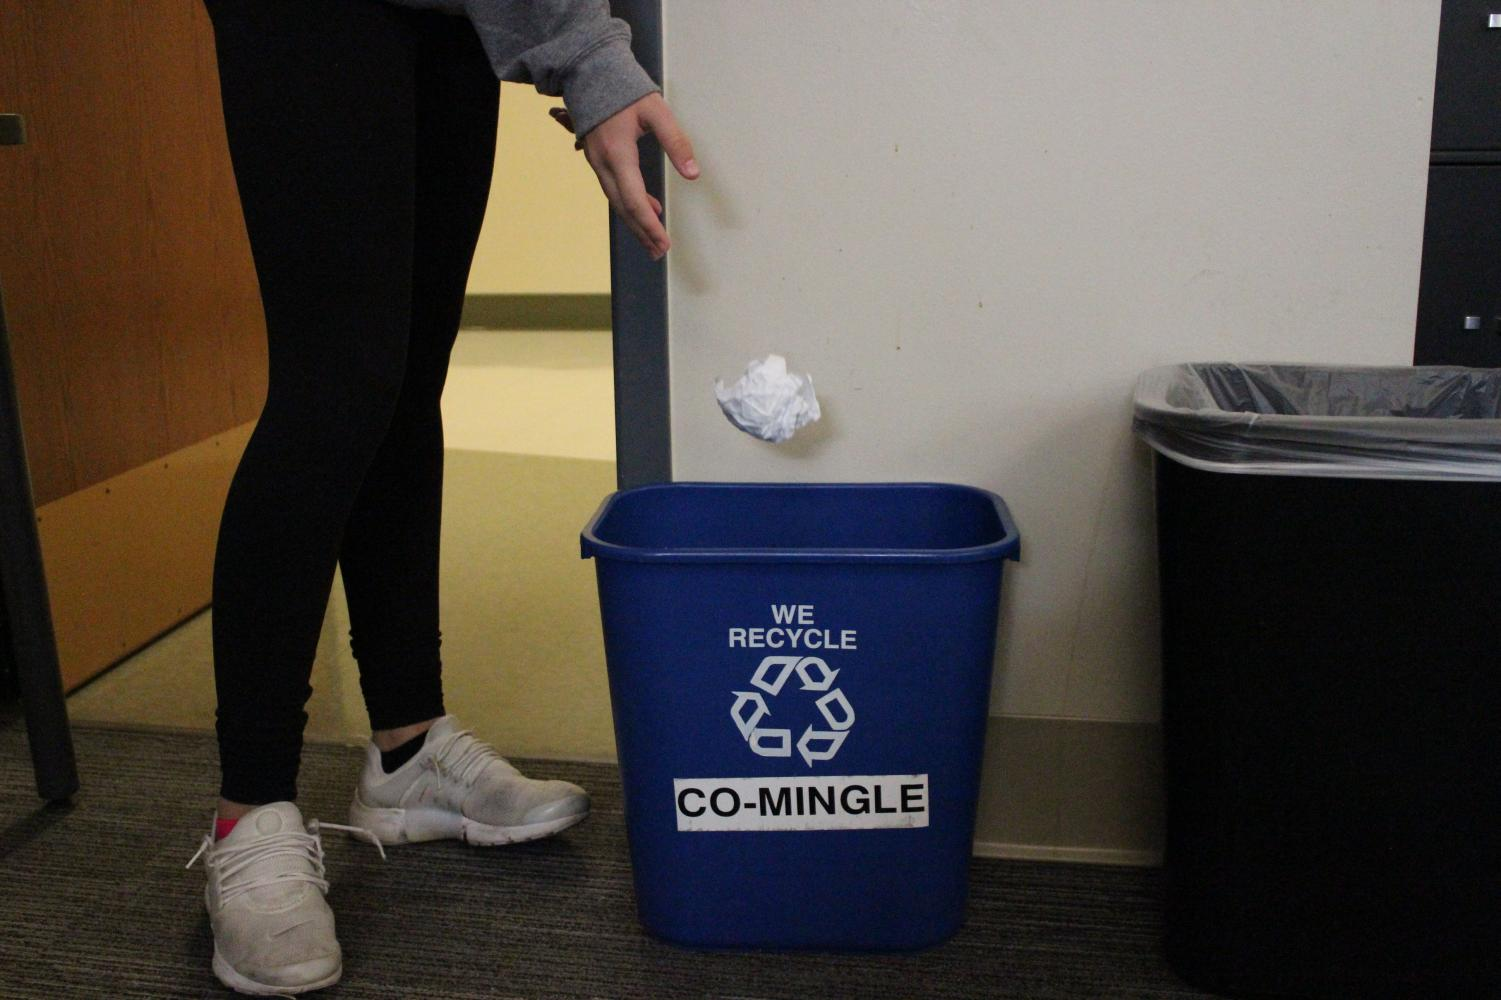 The U.S. produces around 200 million pounds of waste every year. The major of this waste is paper -- something that is very simple to recycle.